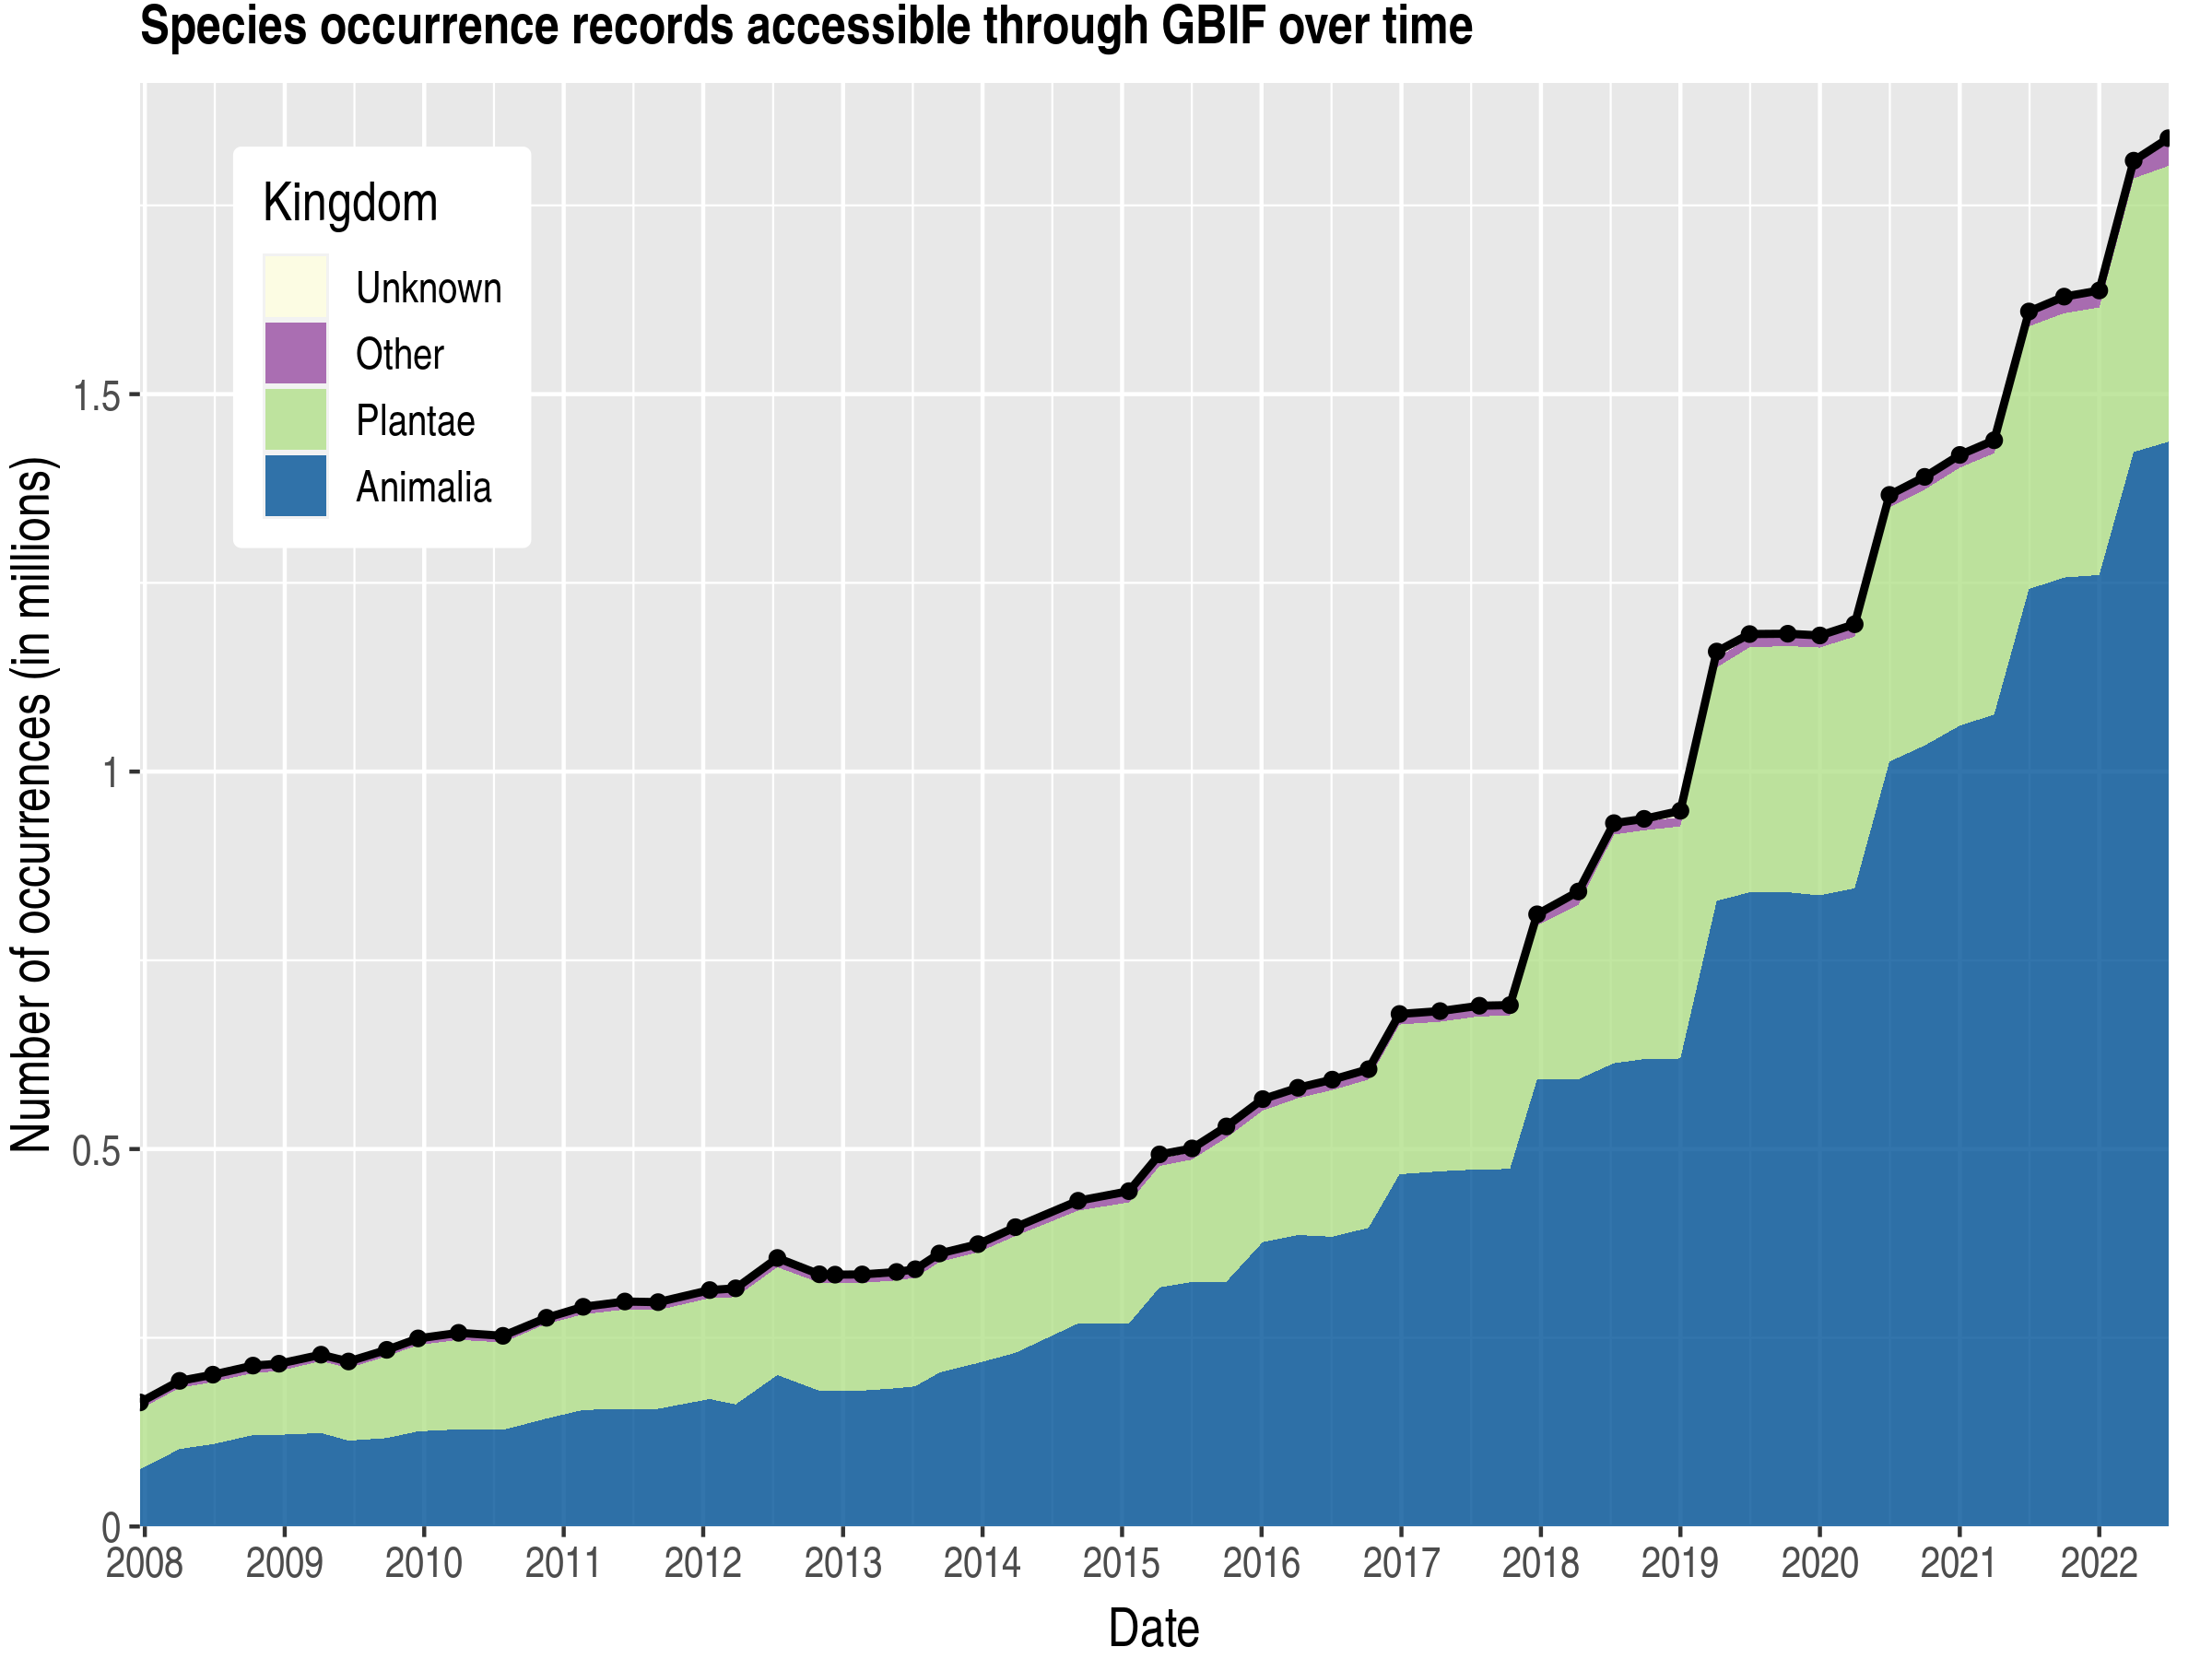 Data trend of records by kingdom about Tanzania, United Republic of